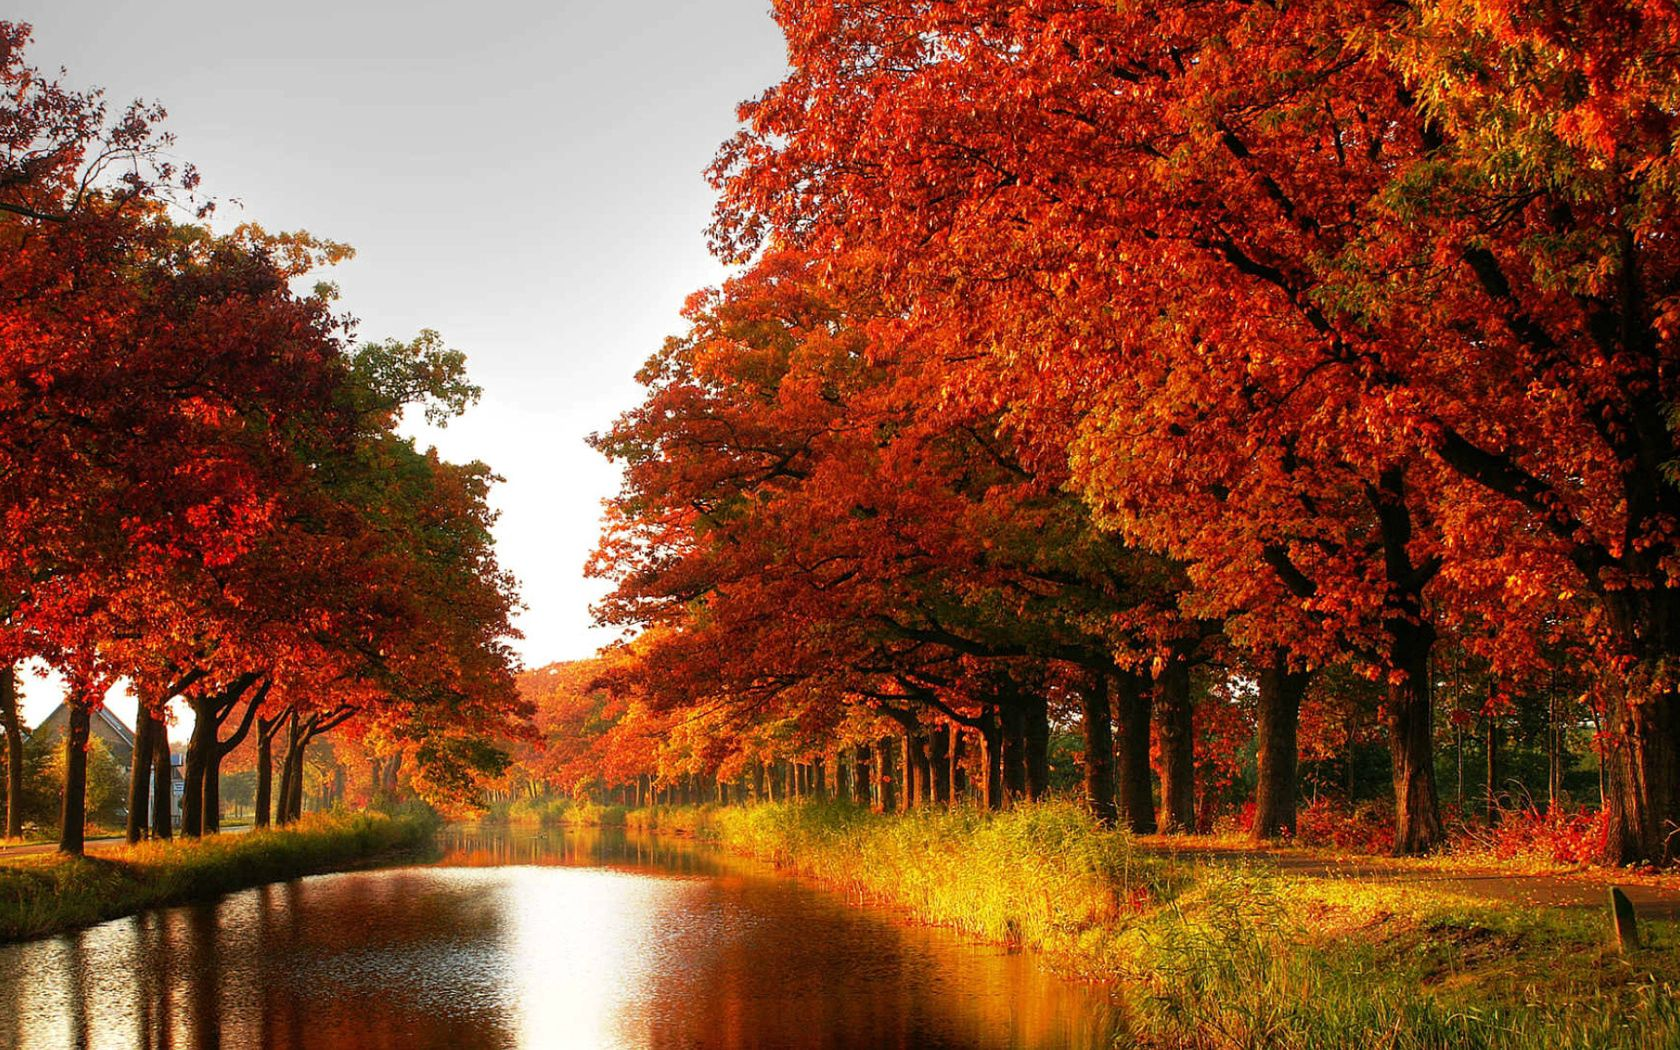 109341 download wallpaper Nature, Forest, Trees, Channel, Autumn screensavers and pictures for free